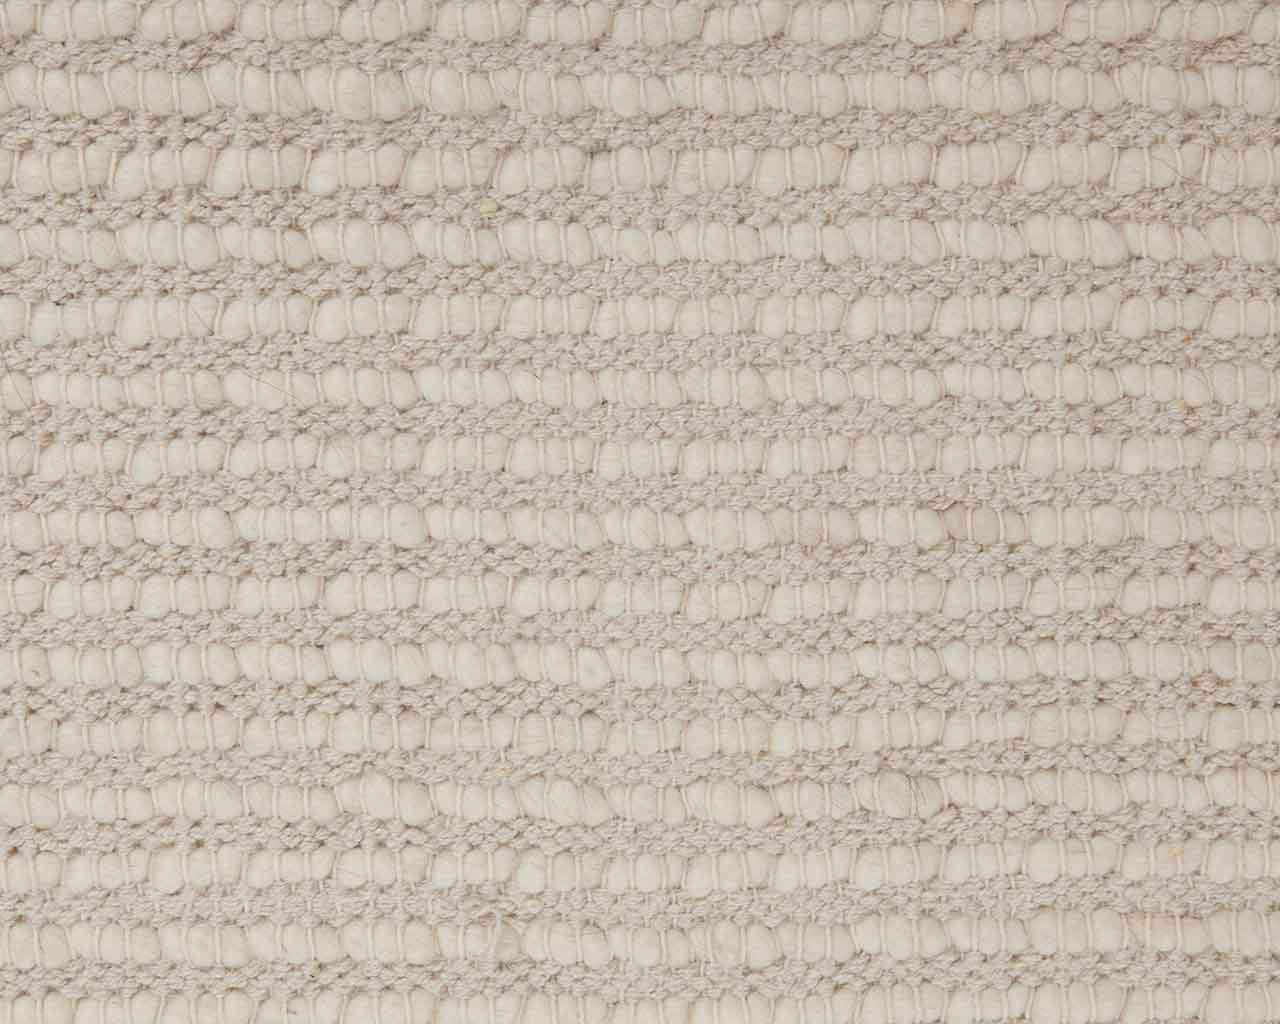 rugs backing white woolen quality 1